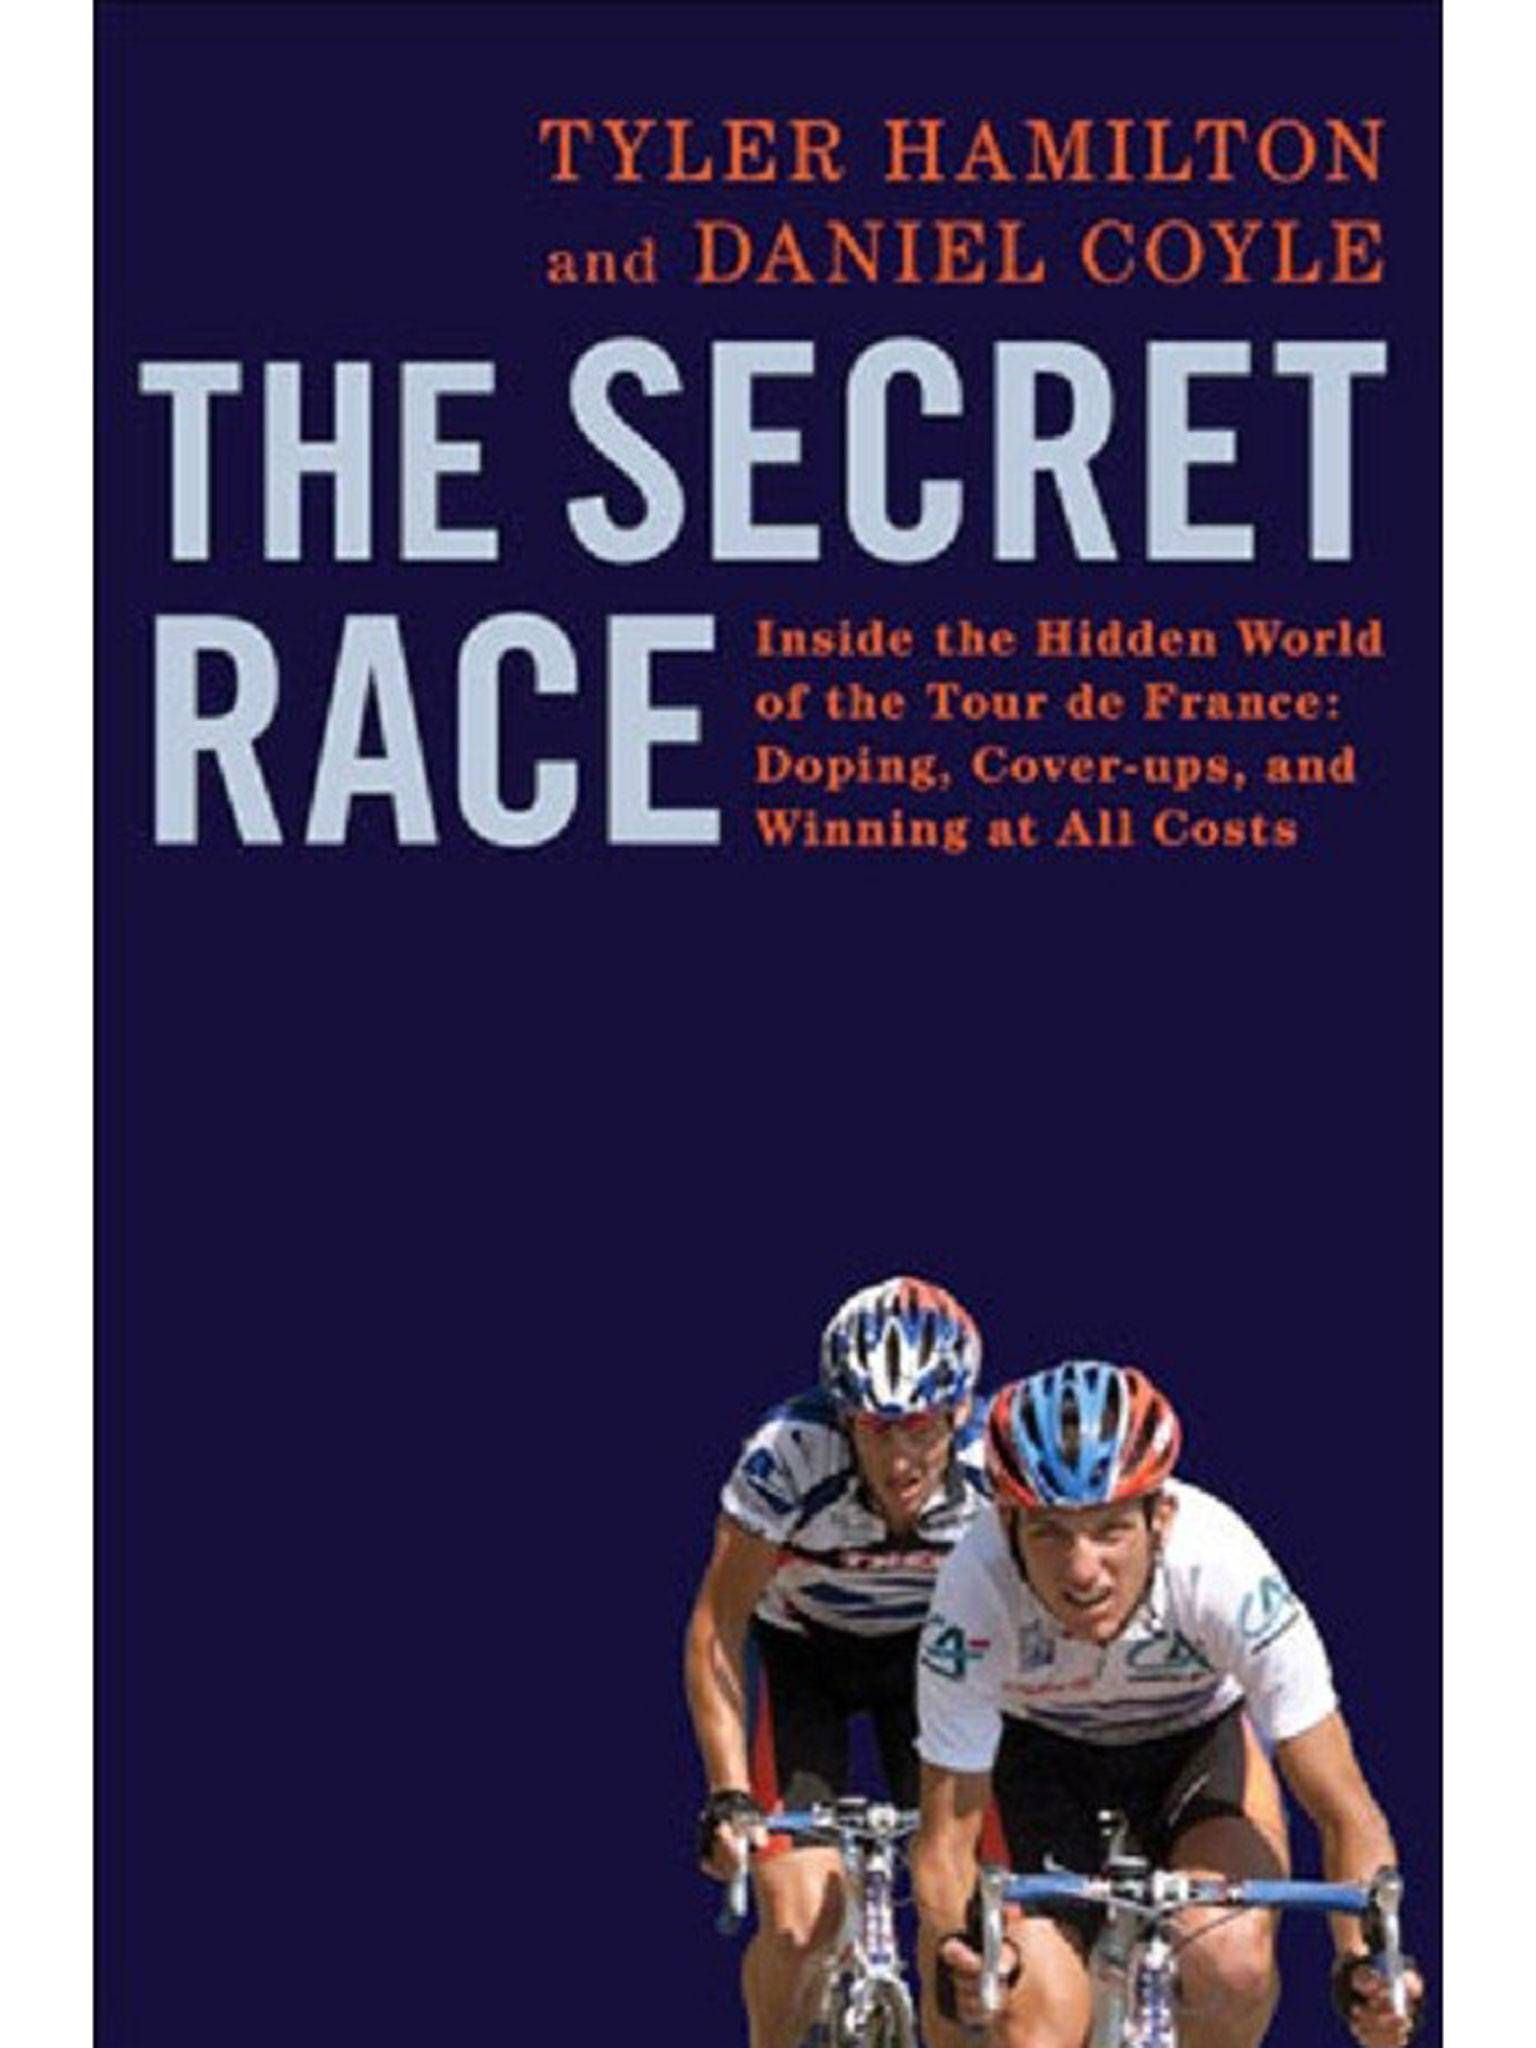 Lance Armstrong Libros The 10 Best Cycling Books For The Bike Cycling Books Books